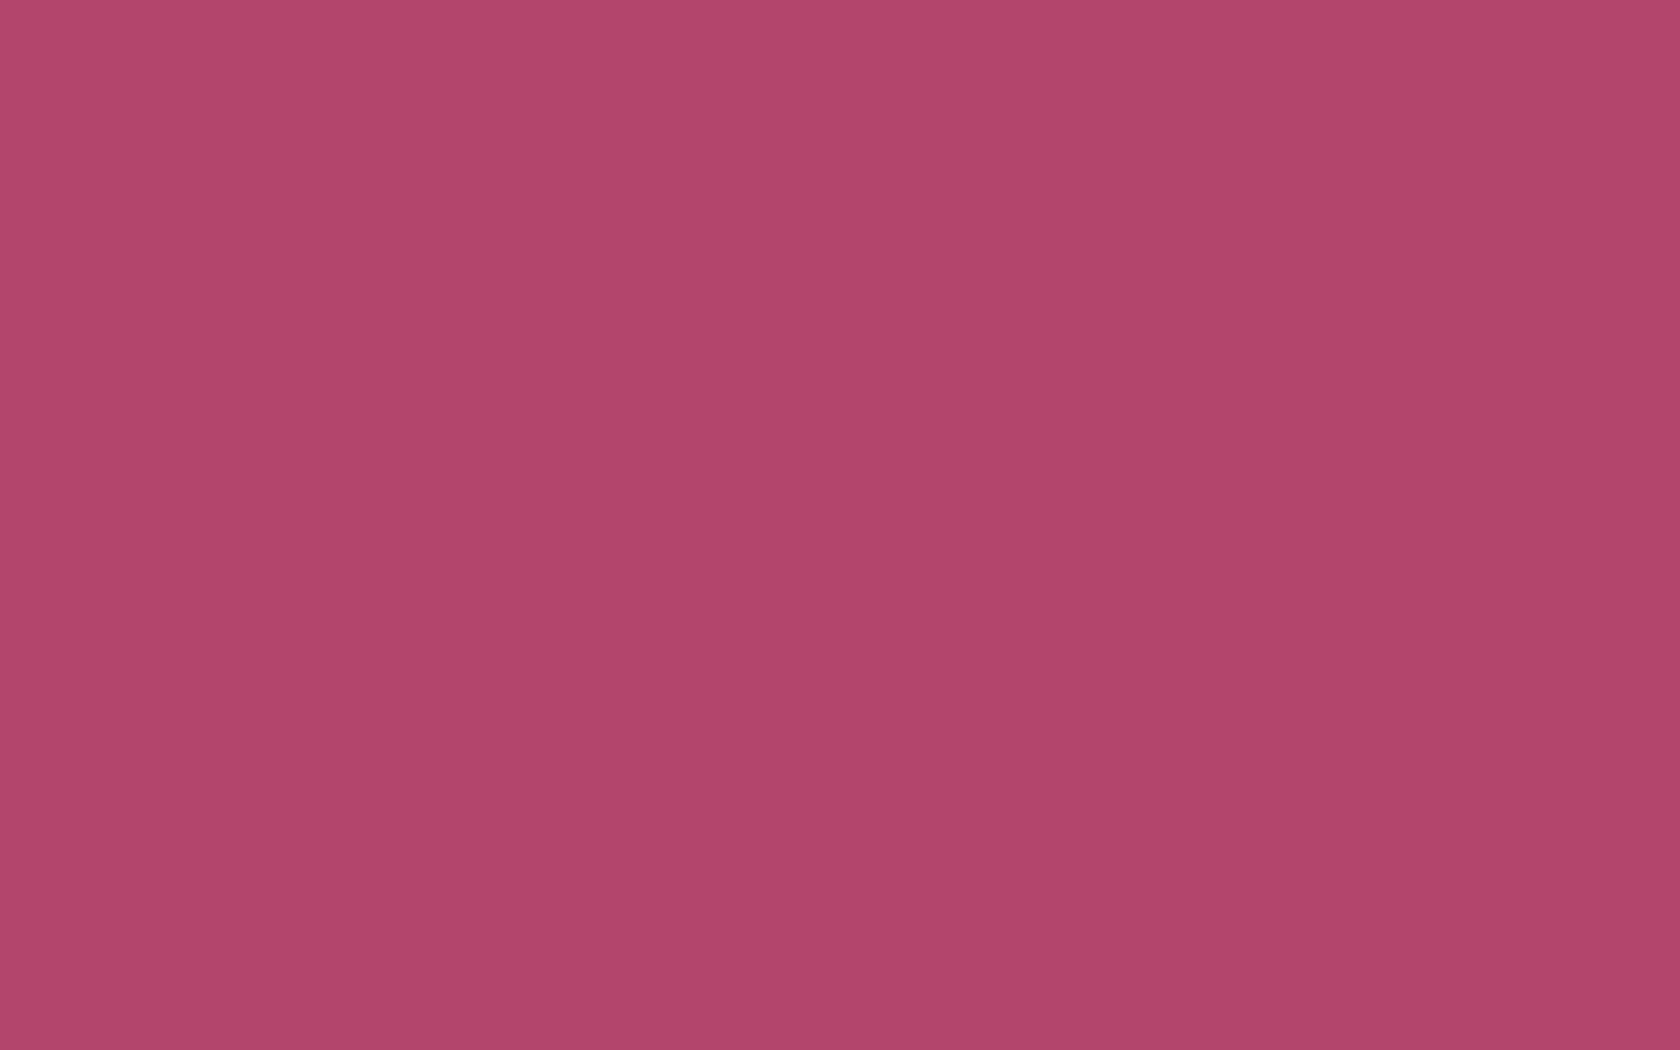 1680x1050 Raspberry Rose Solid Color Background